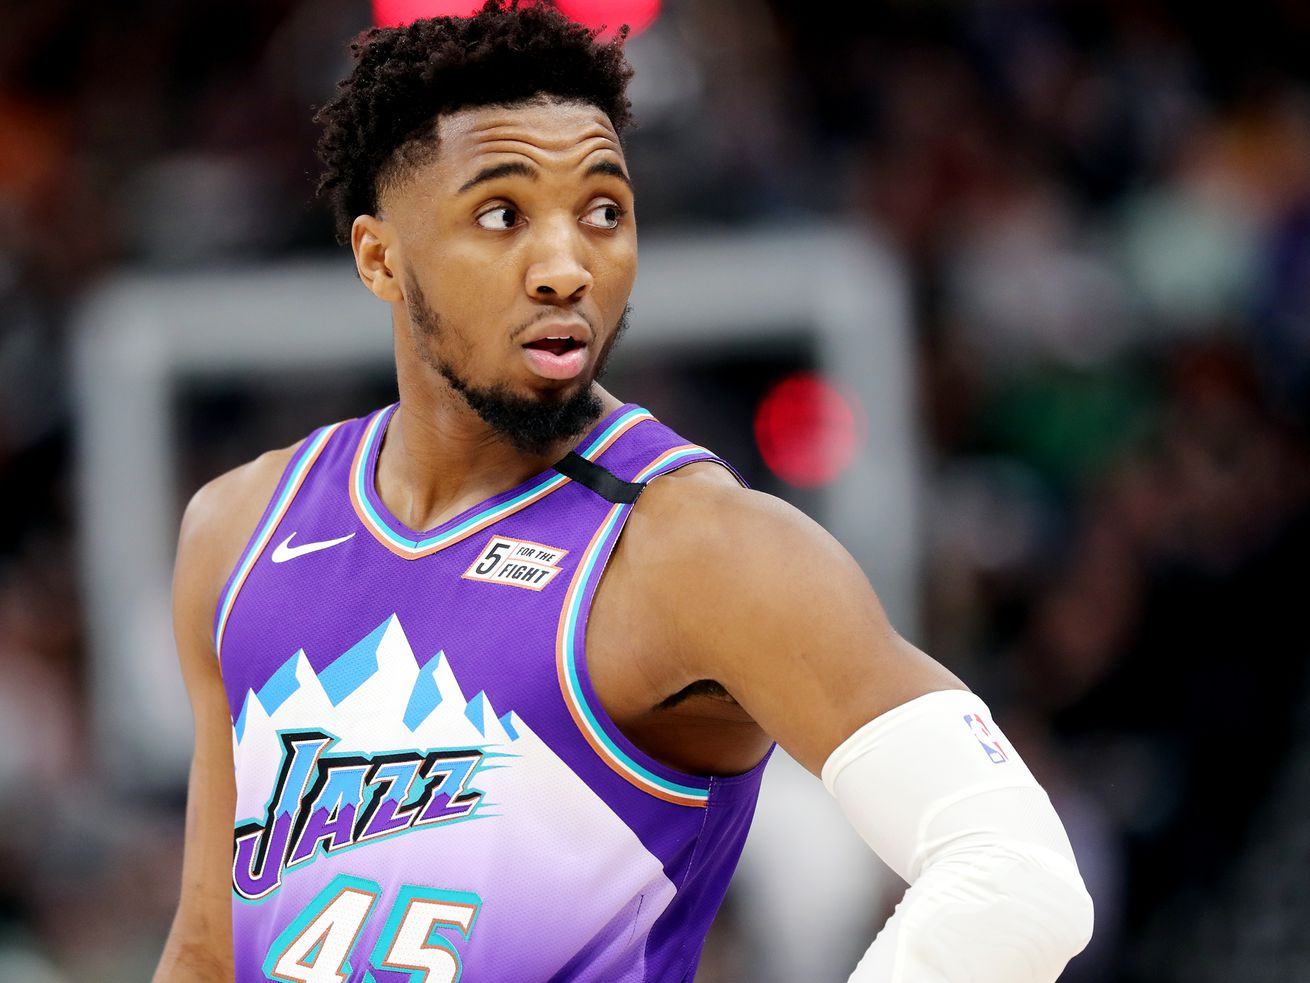 Utah Jazz guard Donovan Mitchell (45) looks into the fans as the Utah Jazz and the Boston Celtics play an NBA basketball game at Vivint Arena in Salt Lake City on Wednesday, Feb. 26, 2020.